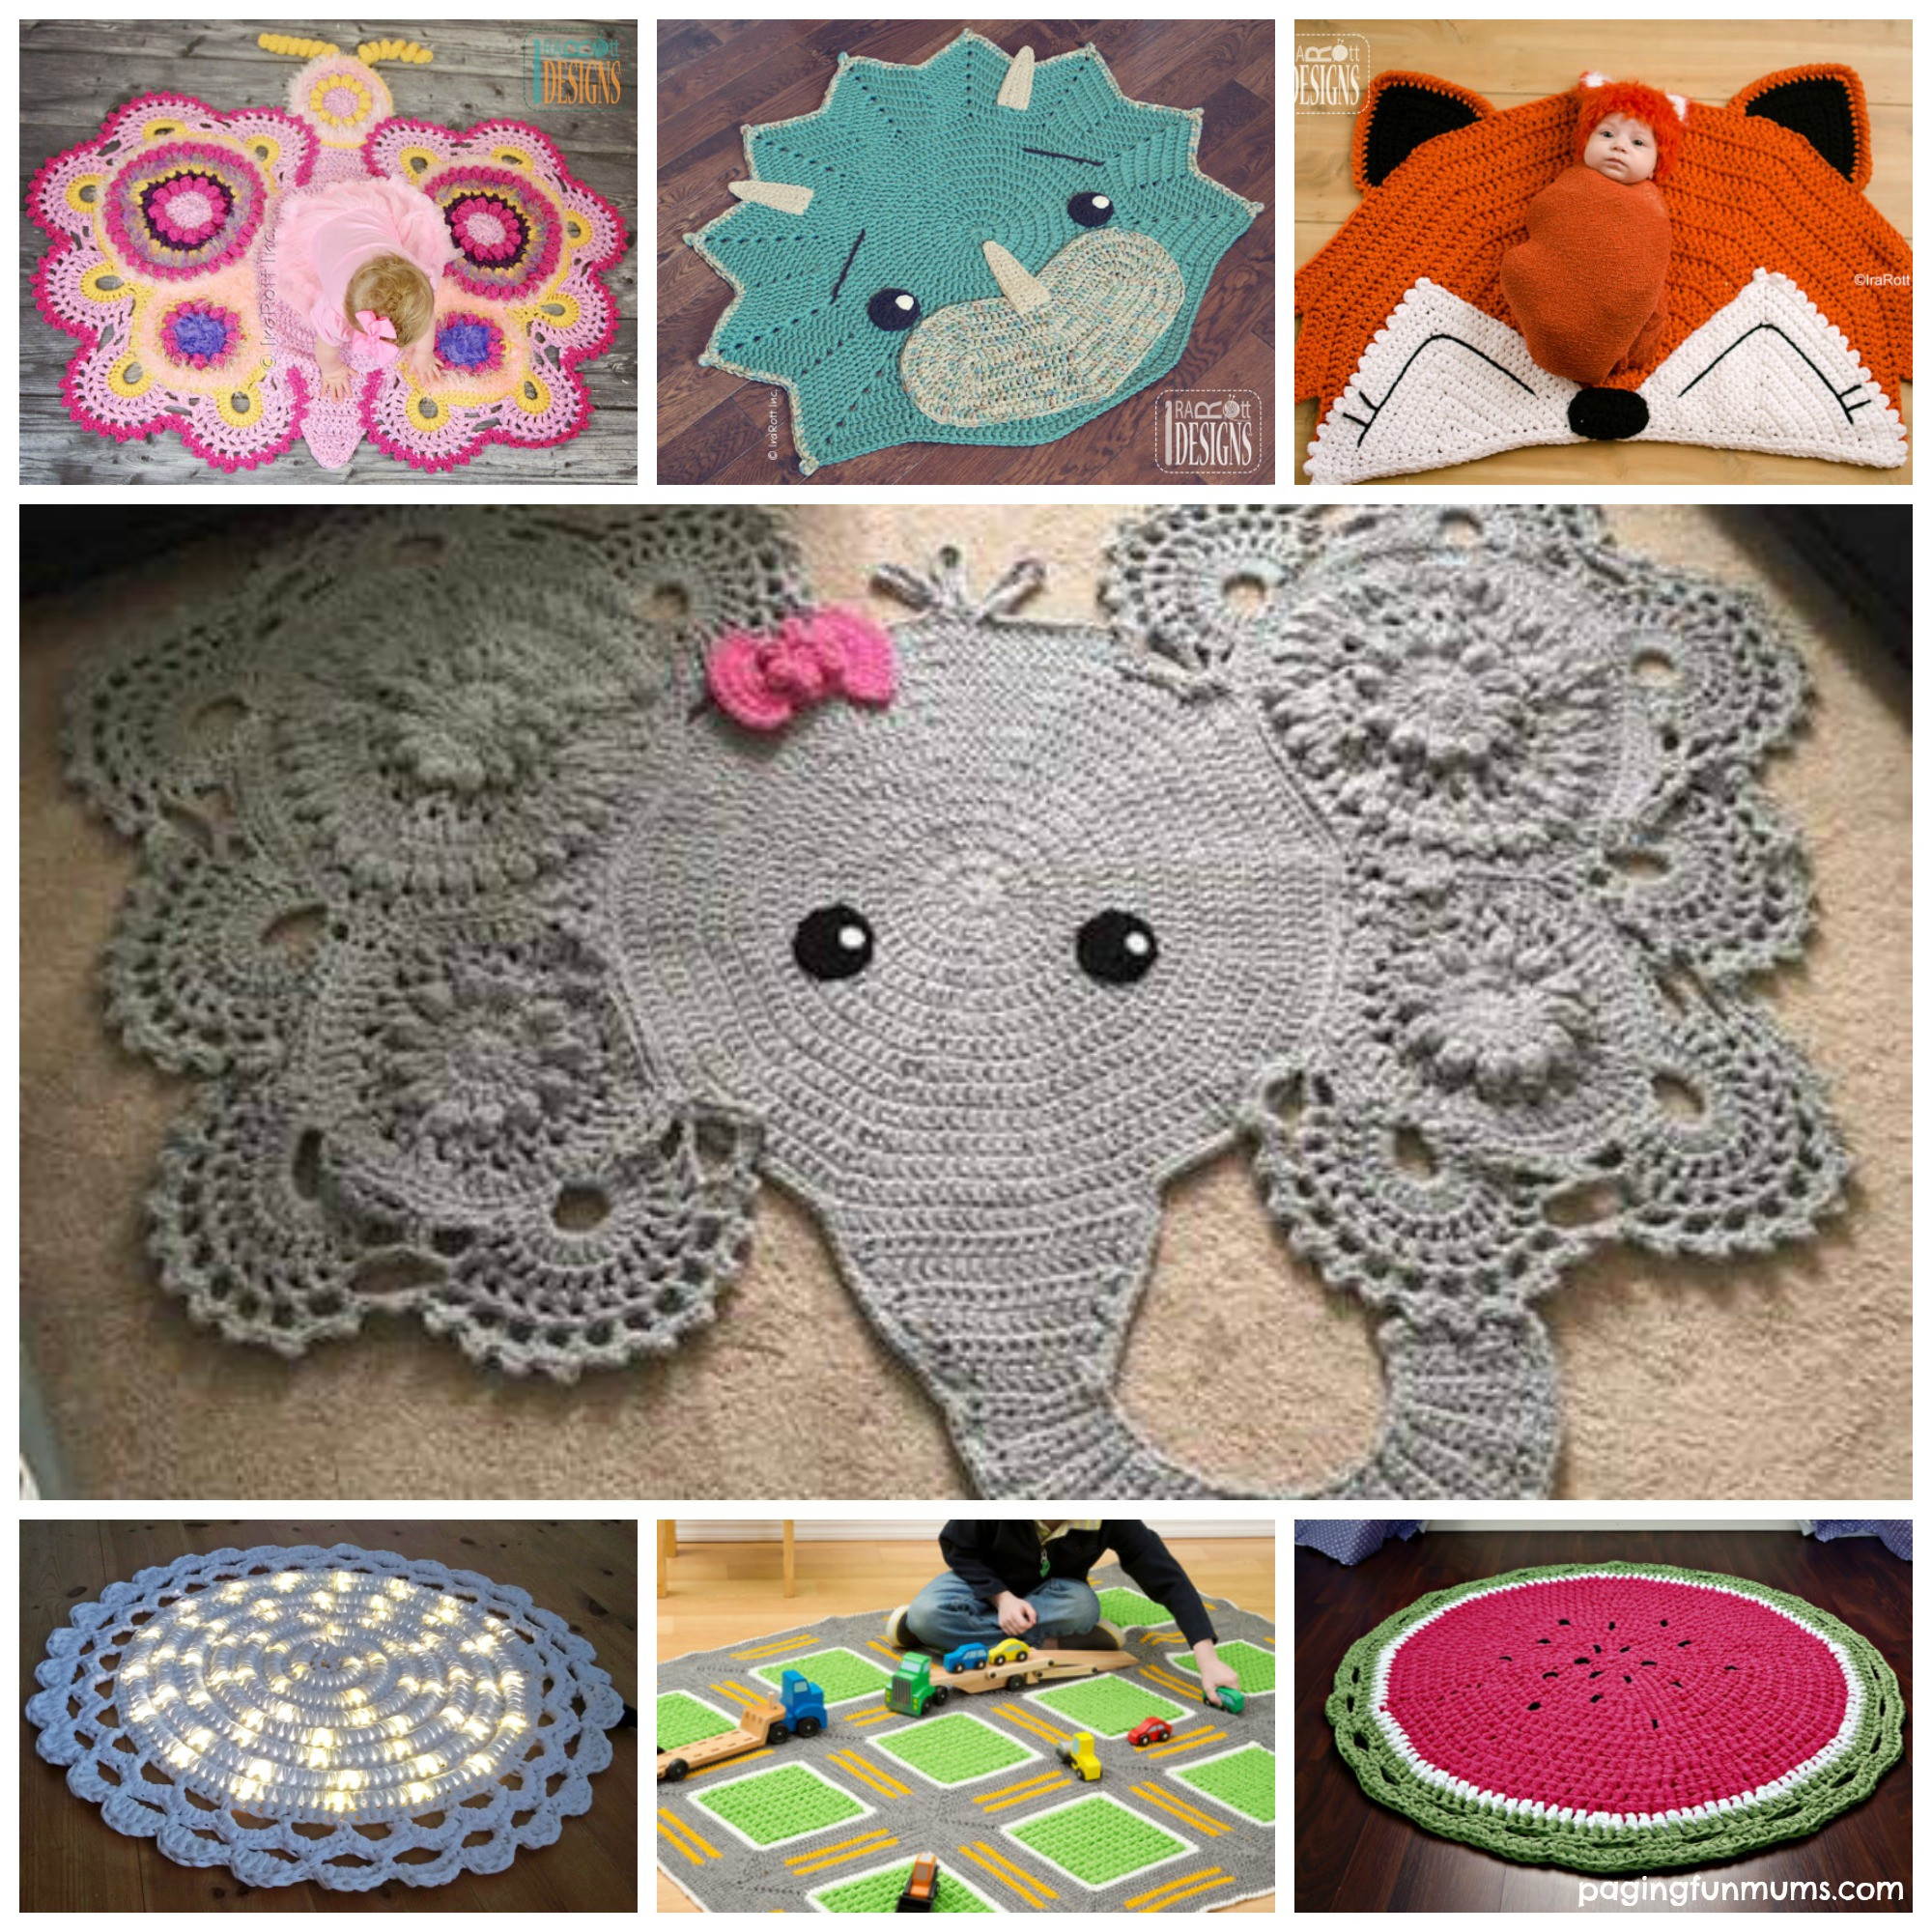 Lovely Clever Crochet Throw Rugs Paging Fun Mums Free Crochet Rug Patterns Of Delightful 48 Pics Free Crochet Rug Patterns